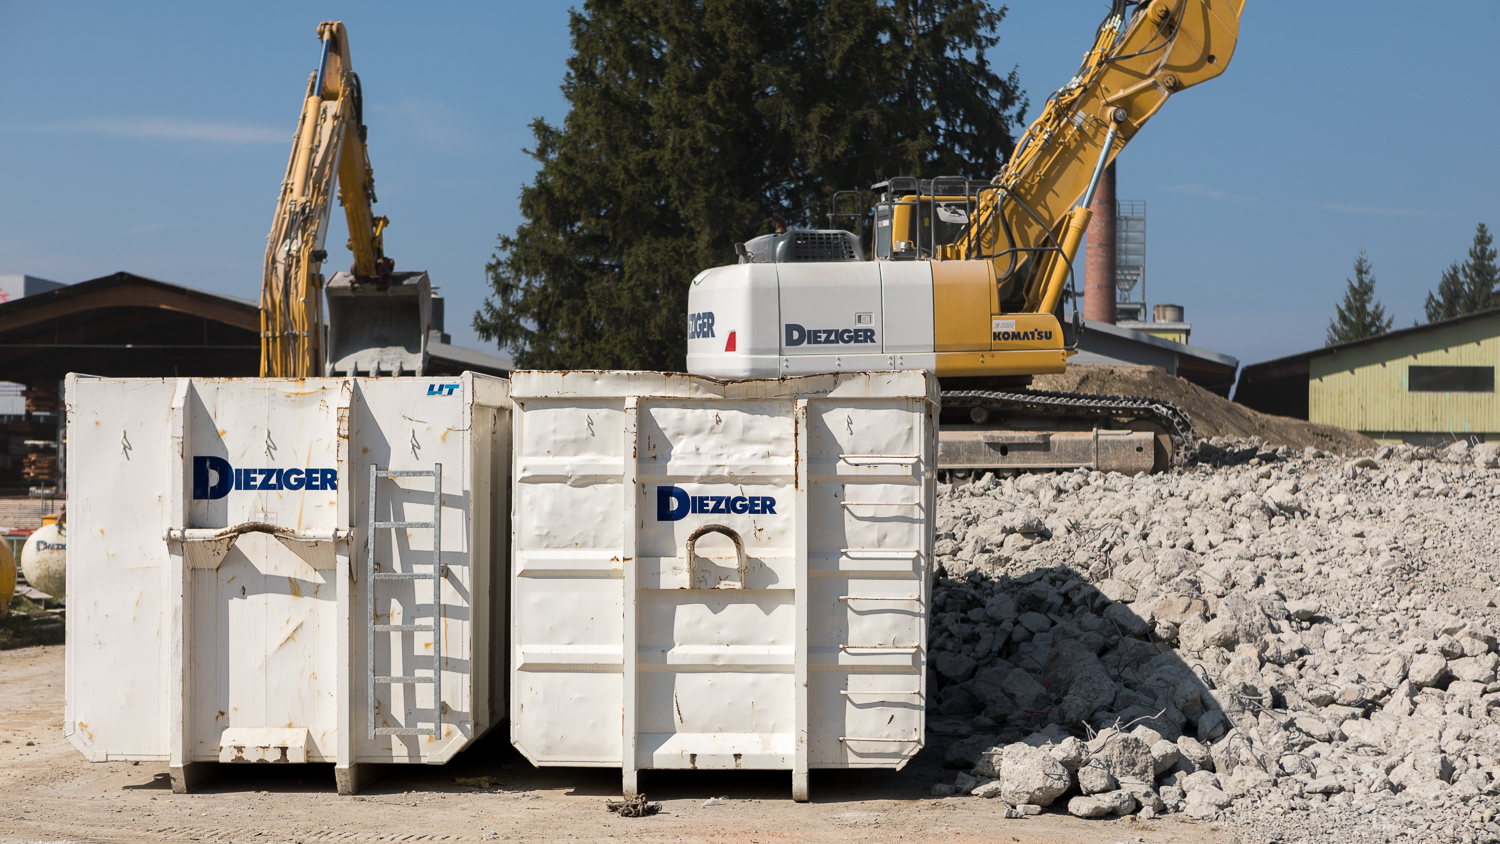 dieziger_recycling-6363